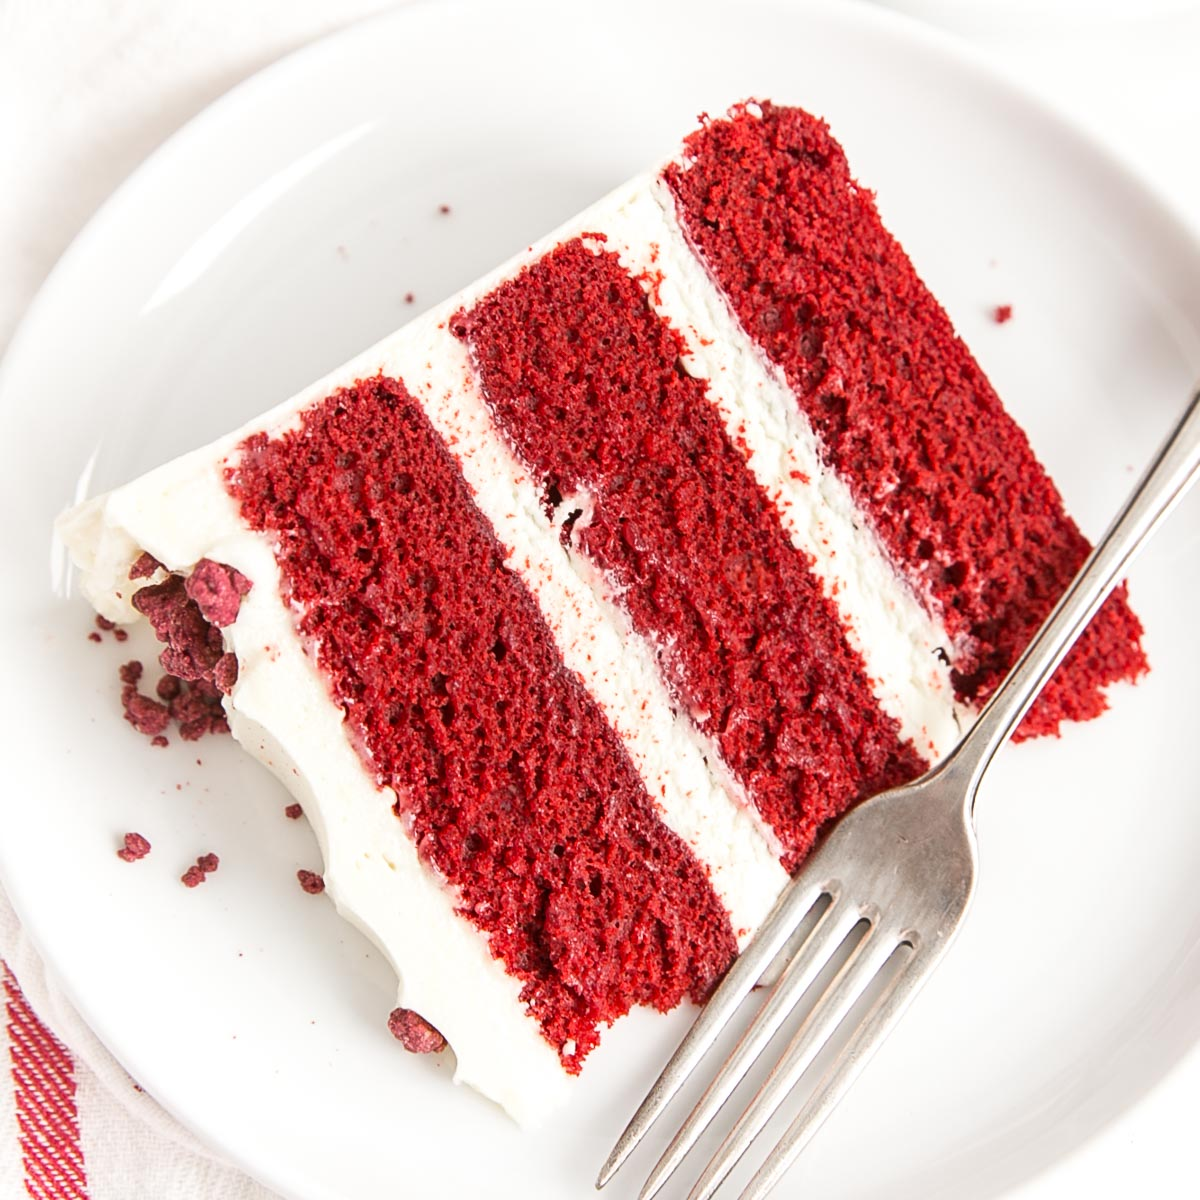 Red Velvet Cake With White Chocolate Ganache Frosting Bake My Way